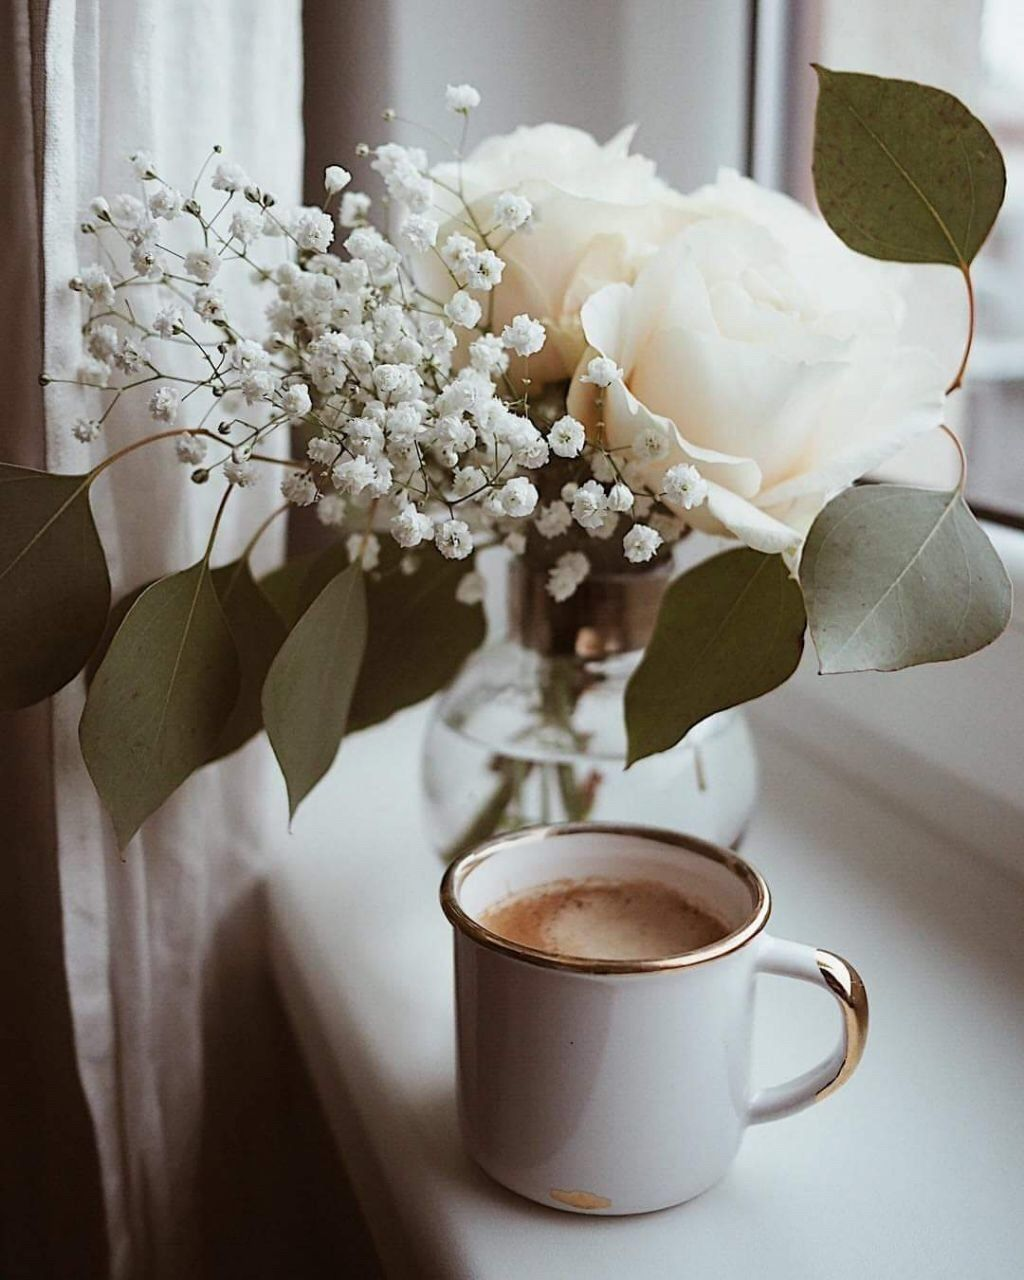 An Ivory and Gold Aesthetic Blog Coffee time, Coffee